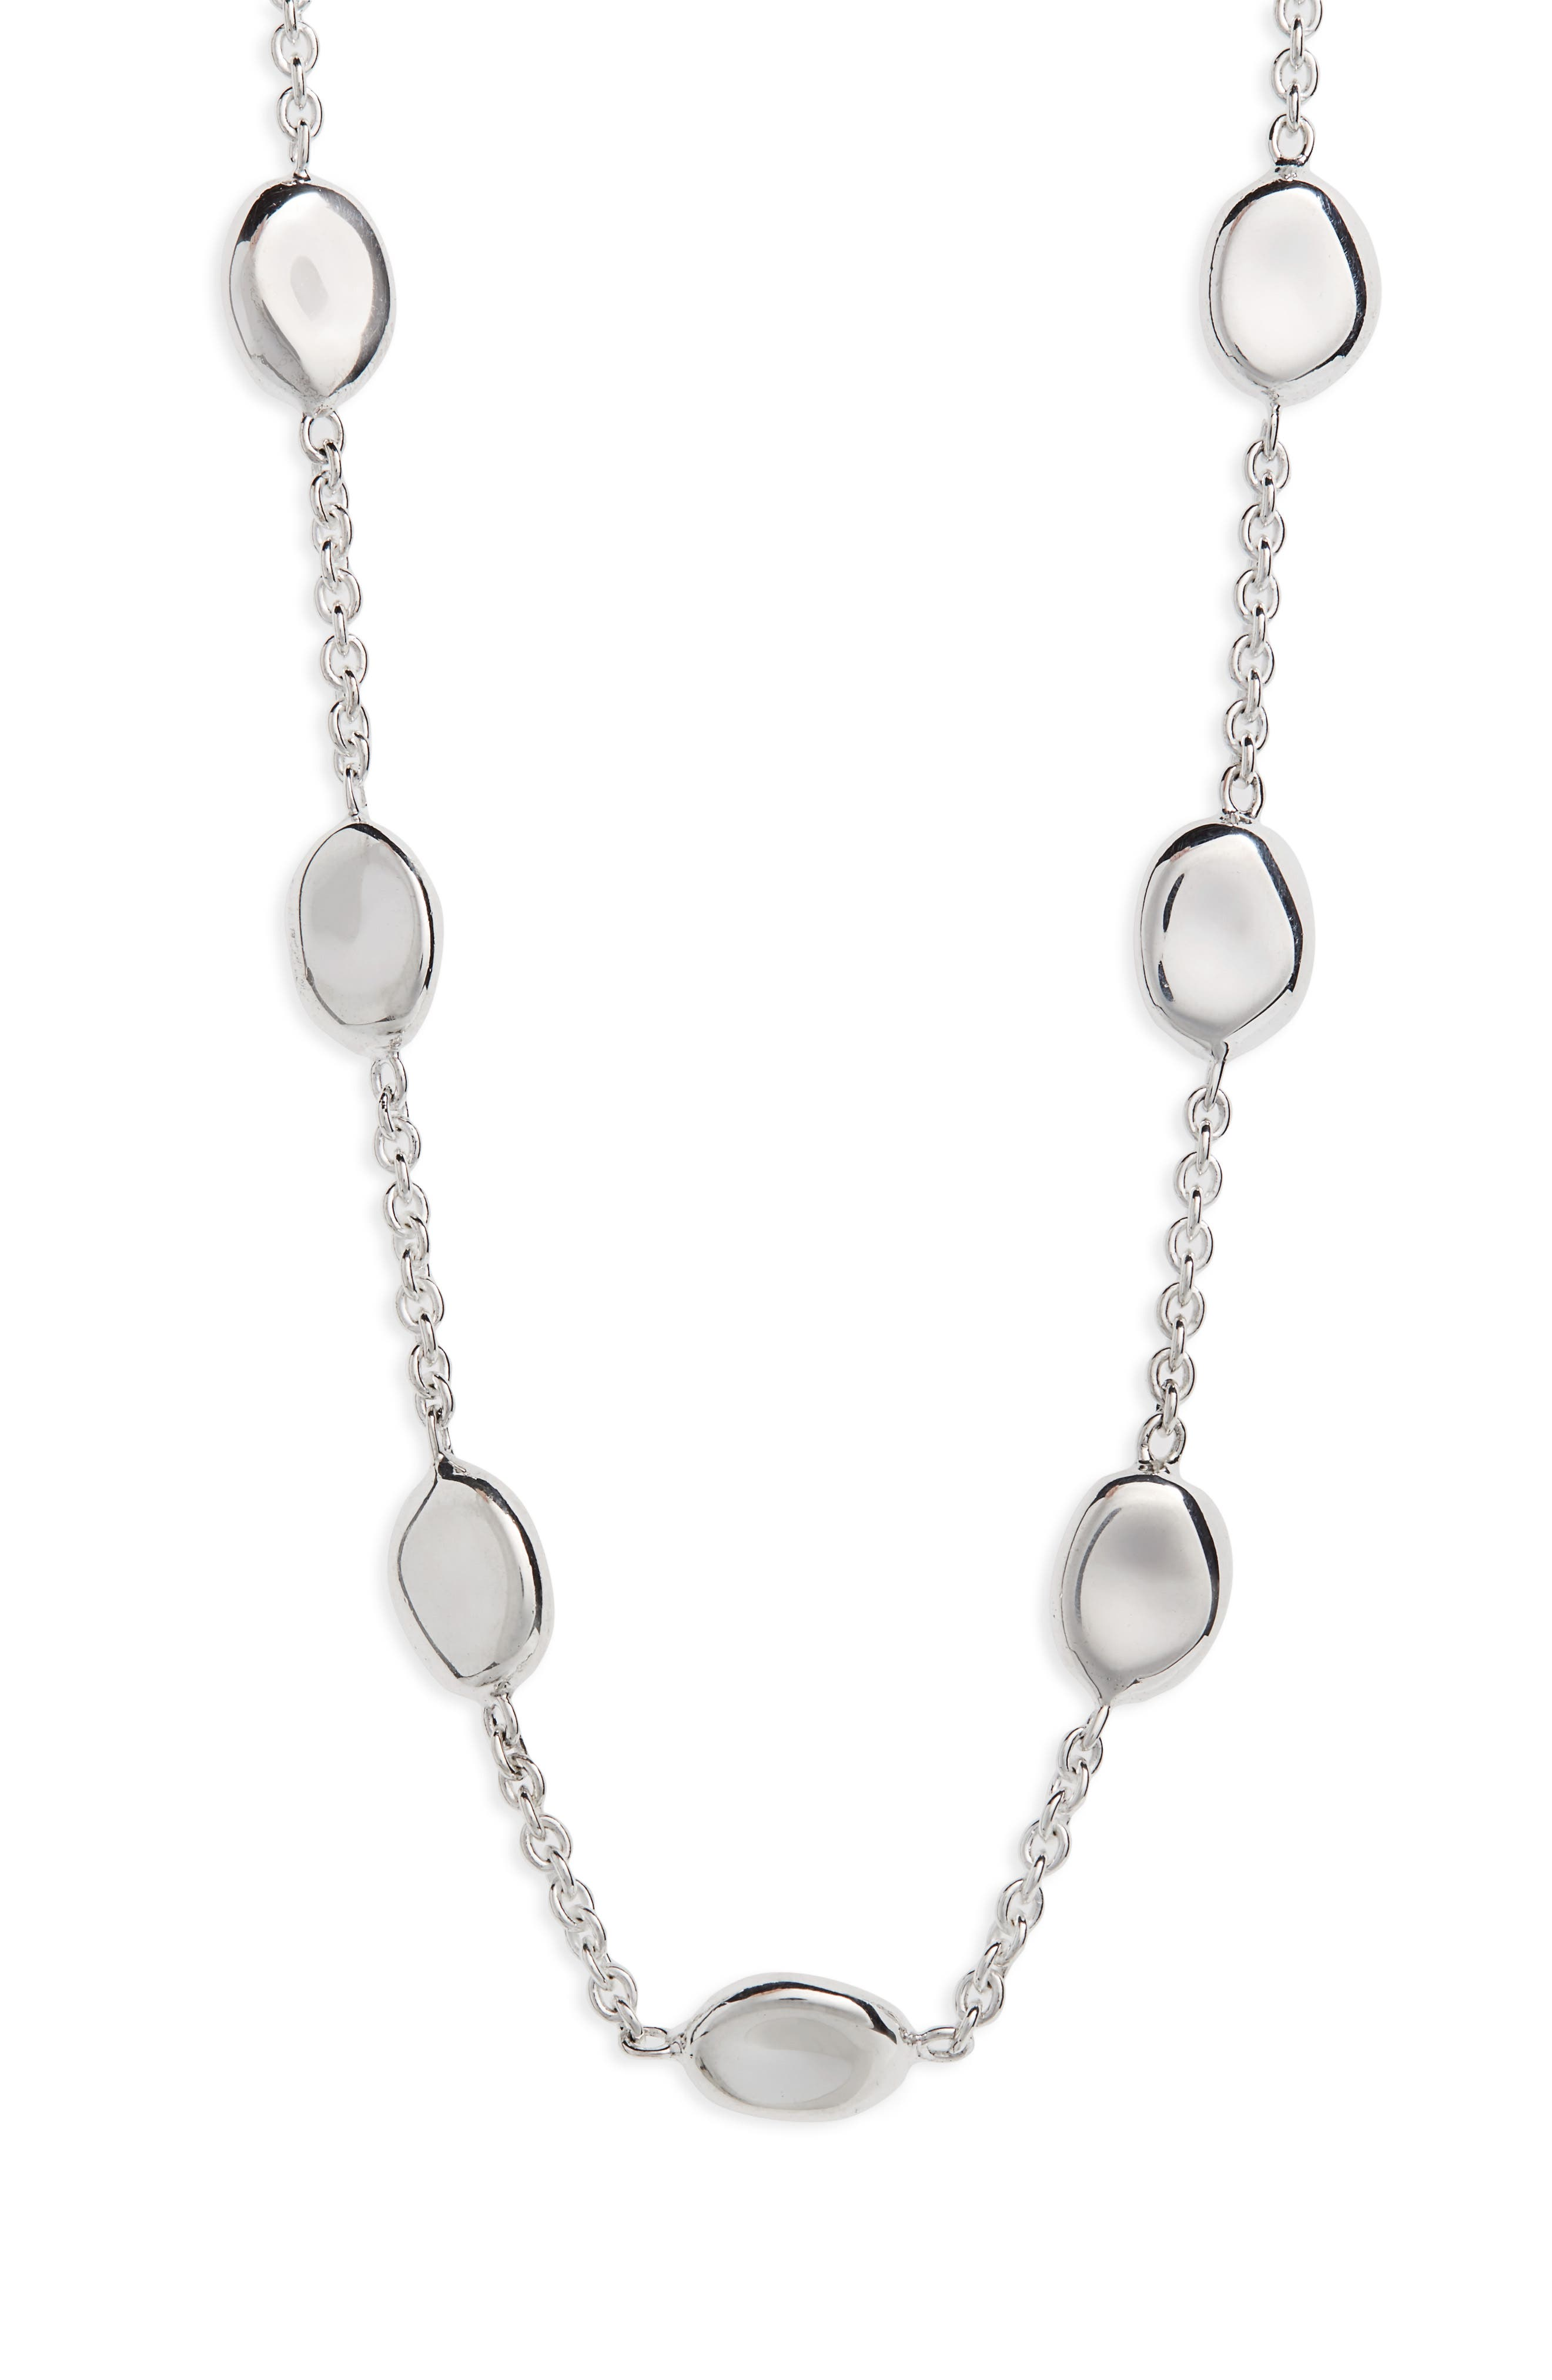 Ippolita Onda Chain Necklace